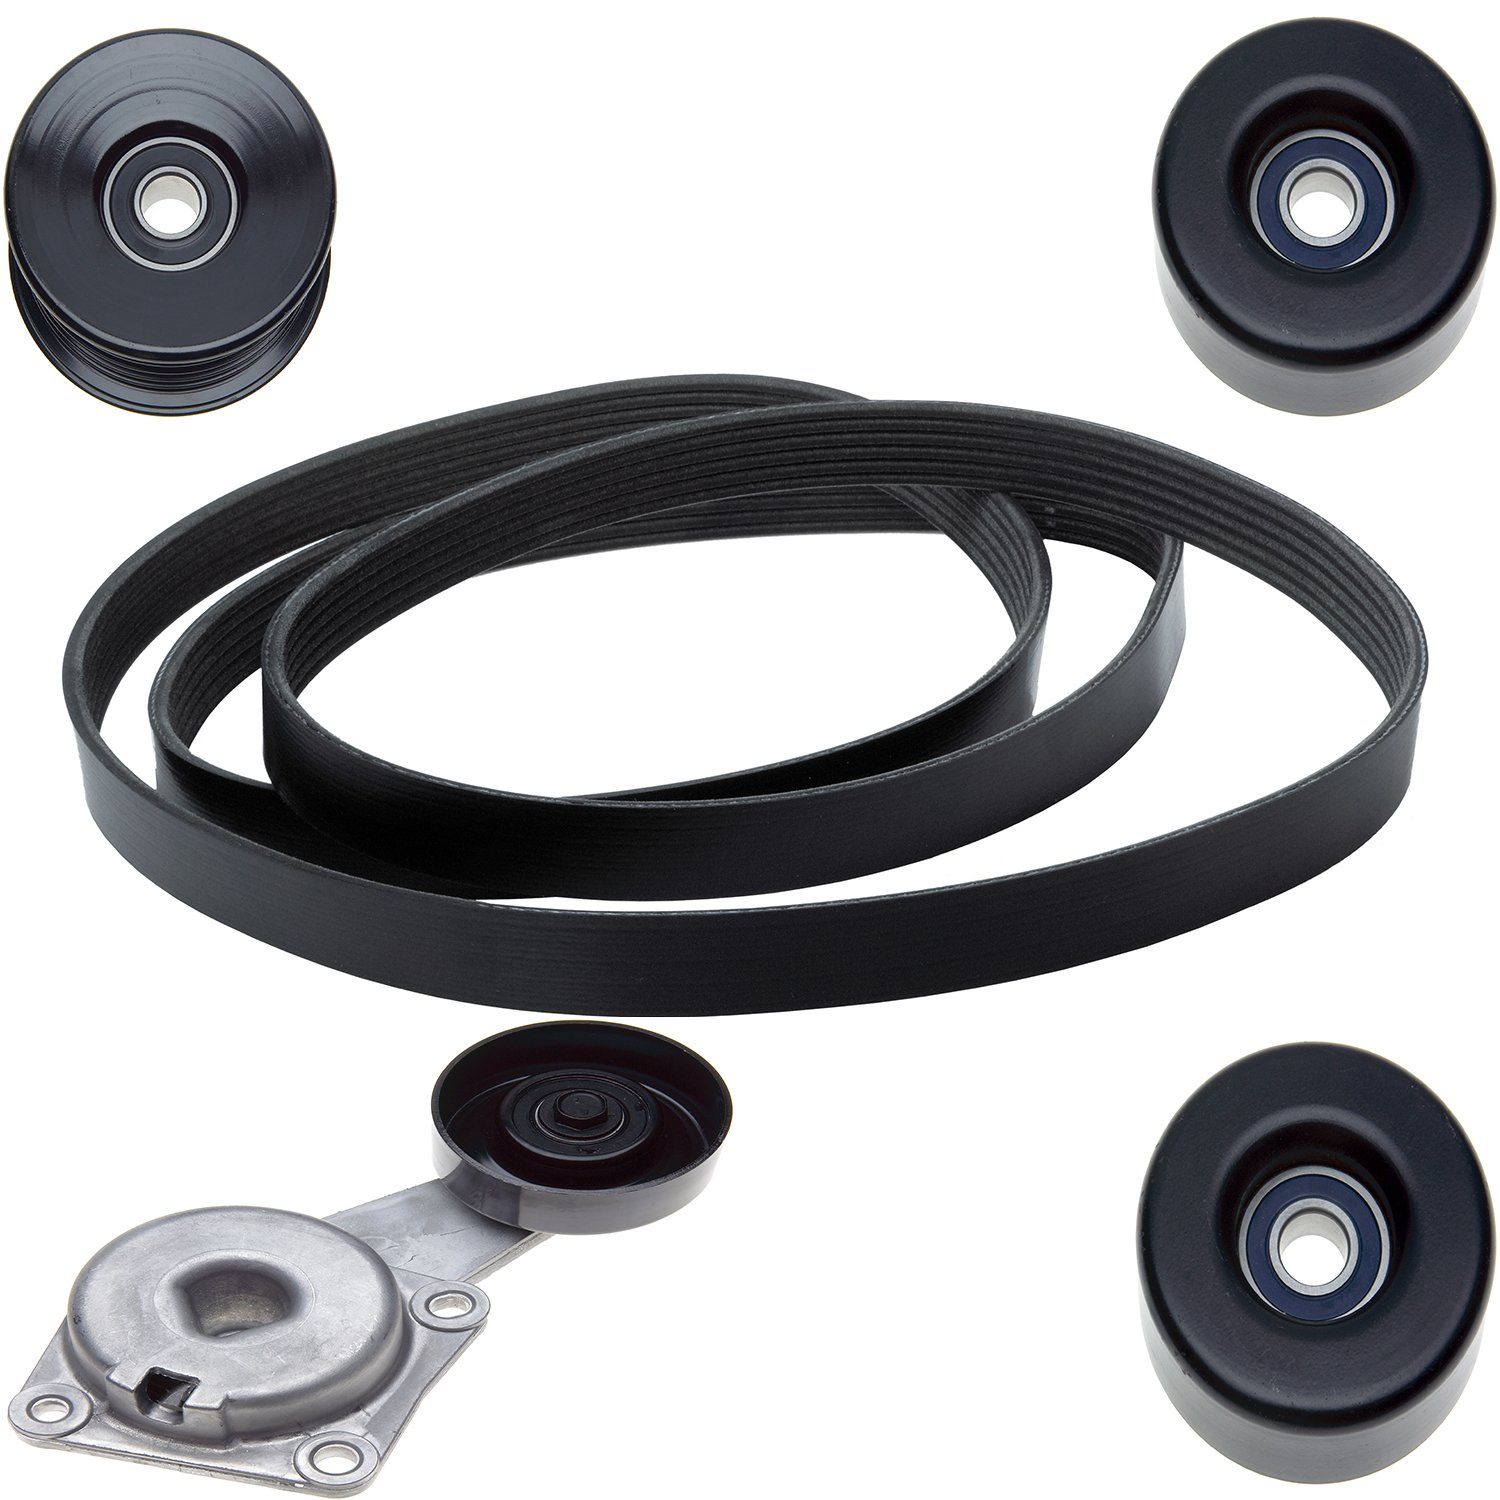 Pulleys and Belt ACDelco ACK061031 Professional Automatic Belt Tensioner and Pulley Kit with Tensioner